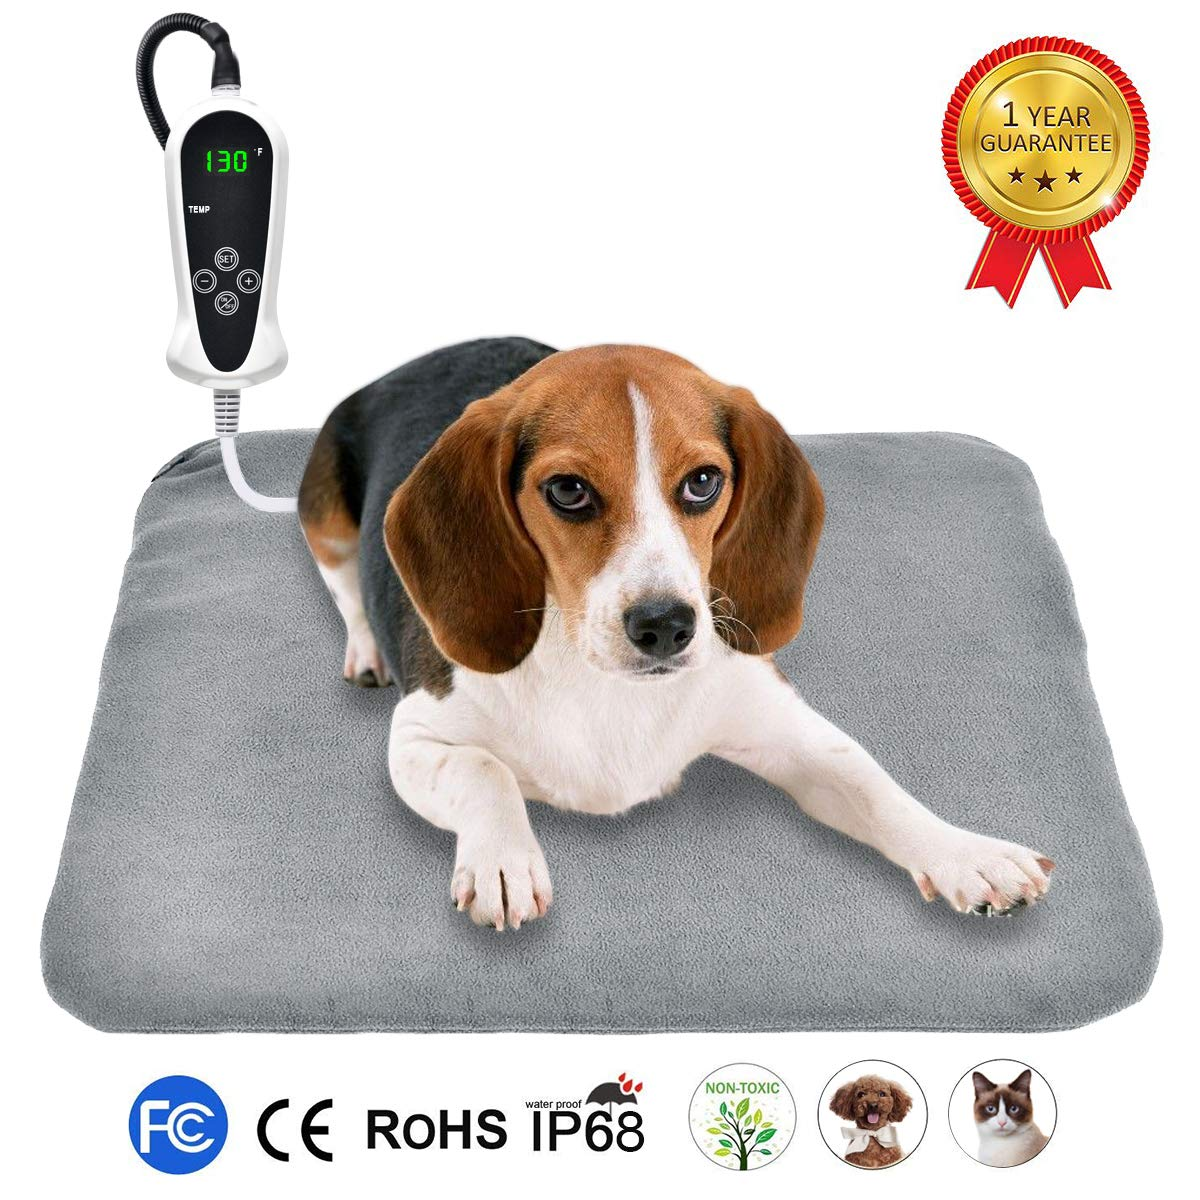 RIOGOO Pet Heating Pad, Upgraded Electric Dog Cat Heating Pad Indoor Waterproof, Auto Power Off 18'' x 18'' Grey by RIOGOO